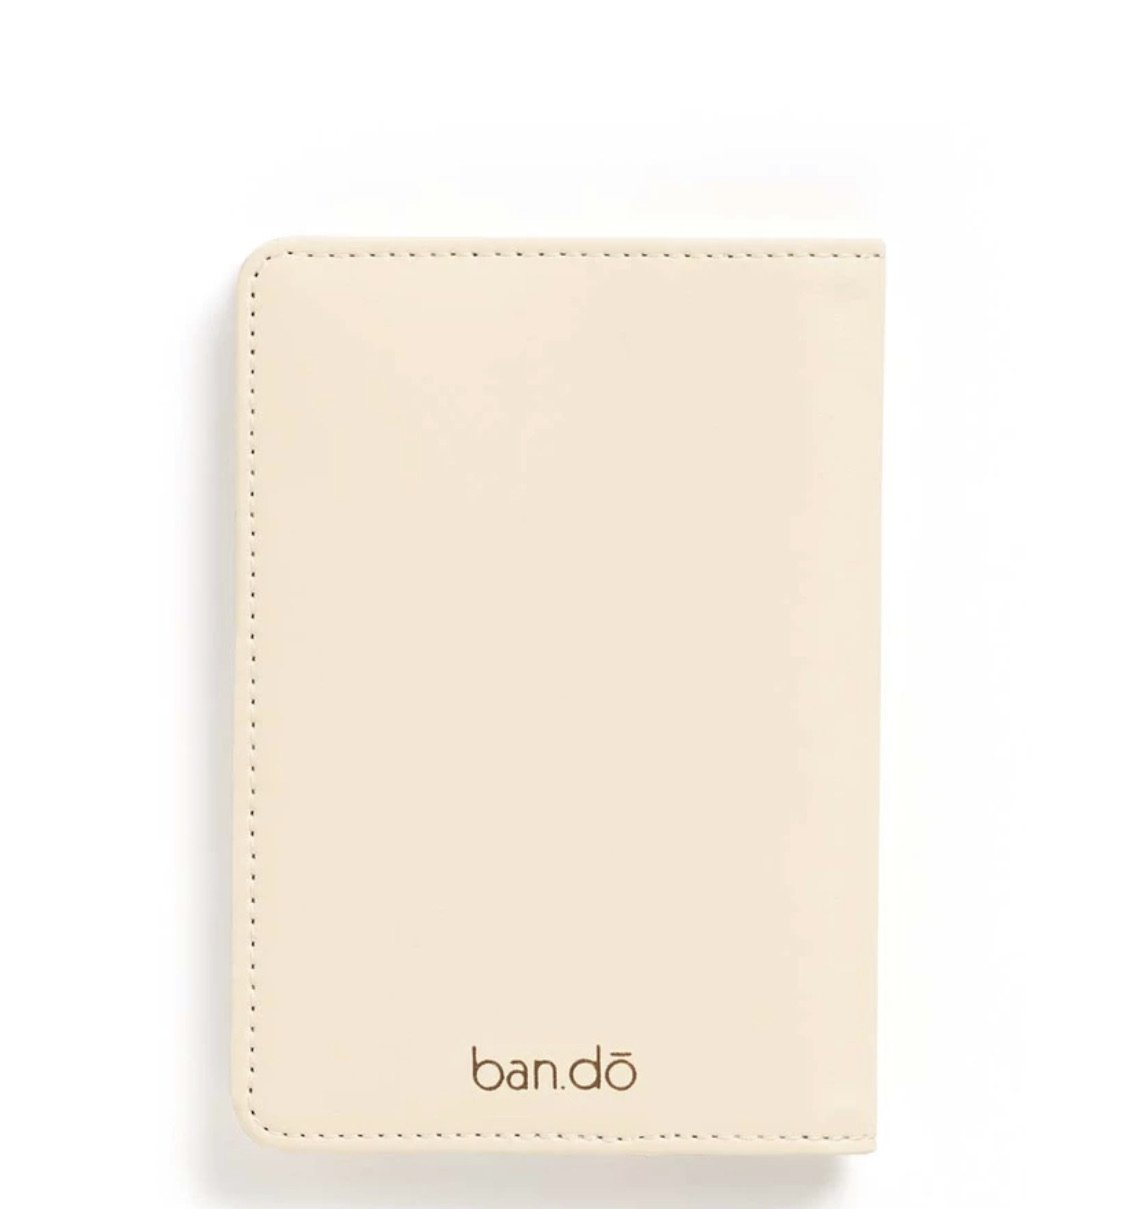 Ban.dō Passport Holder - Local Pick Up or Fast Delivery - My Travel Shop